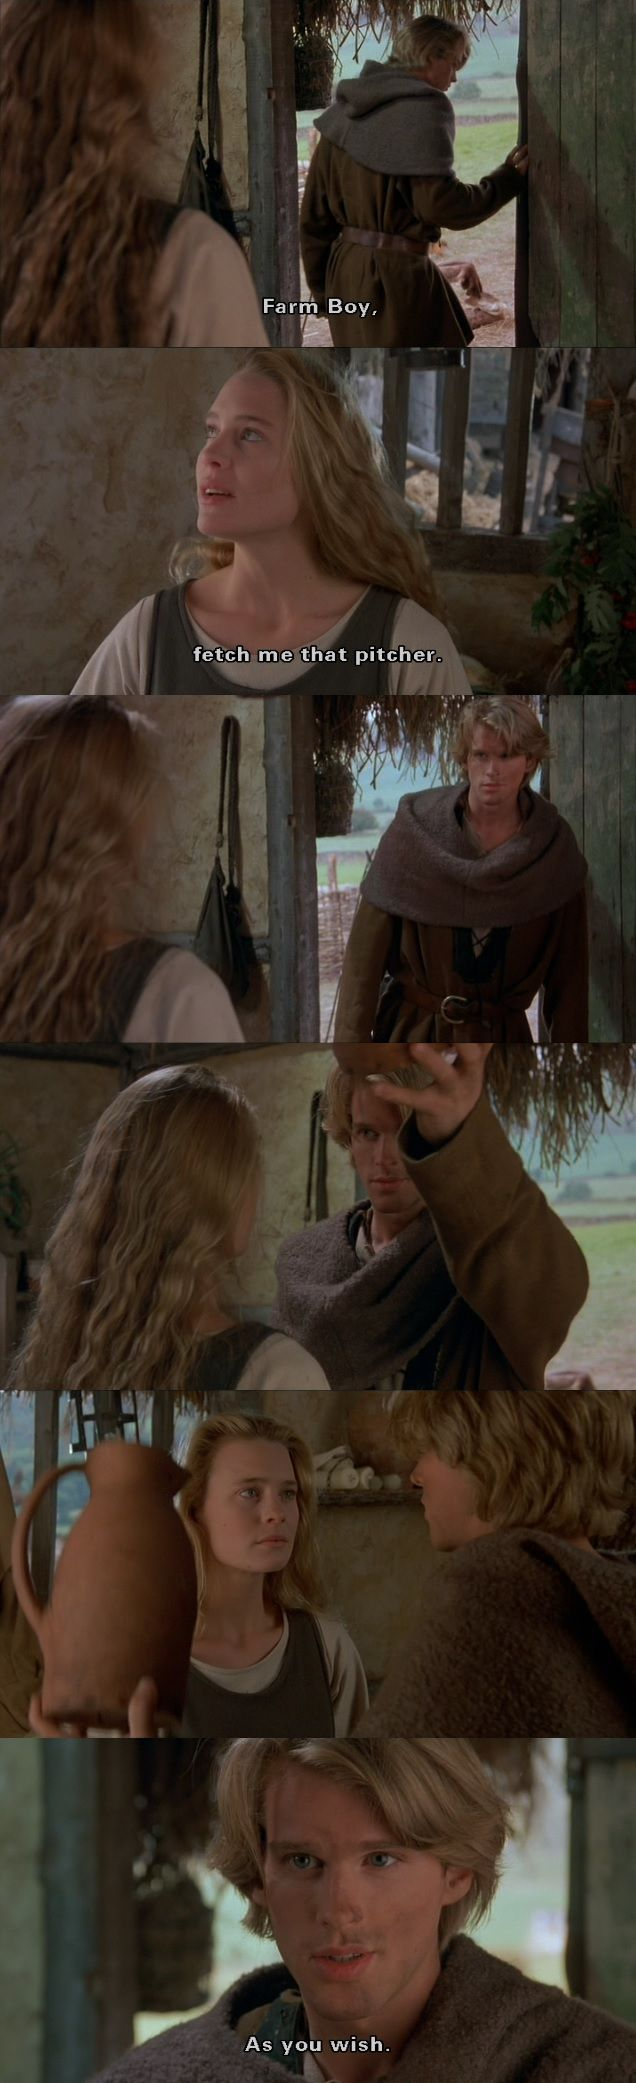 (The Princess Bride)